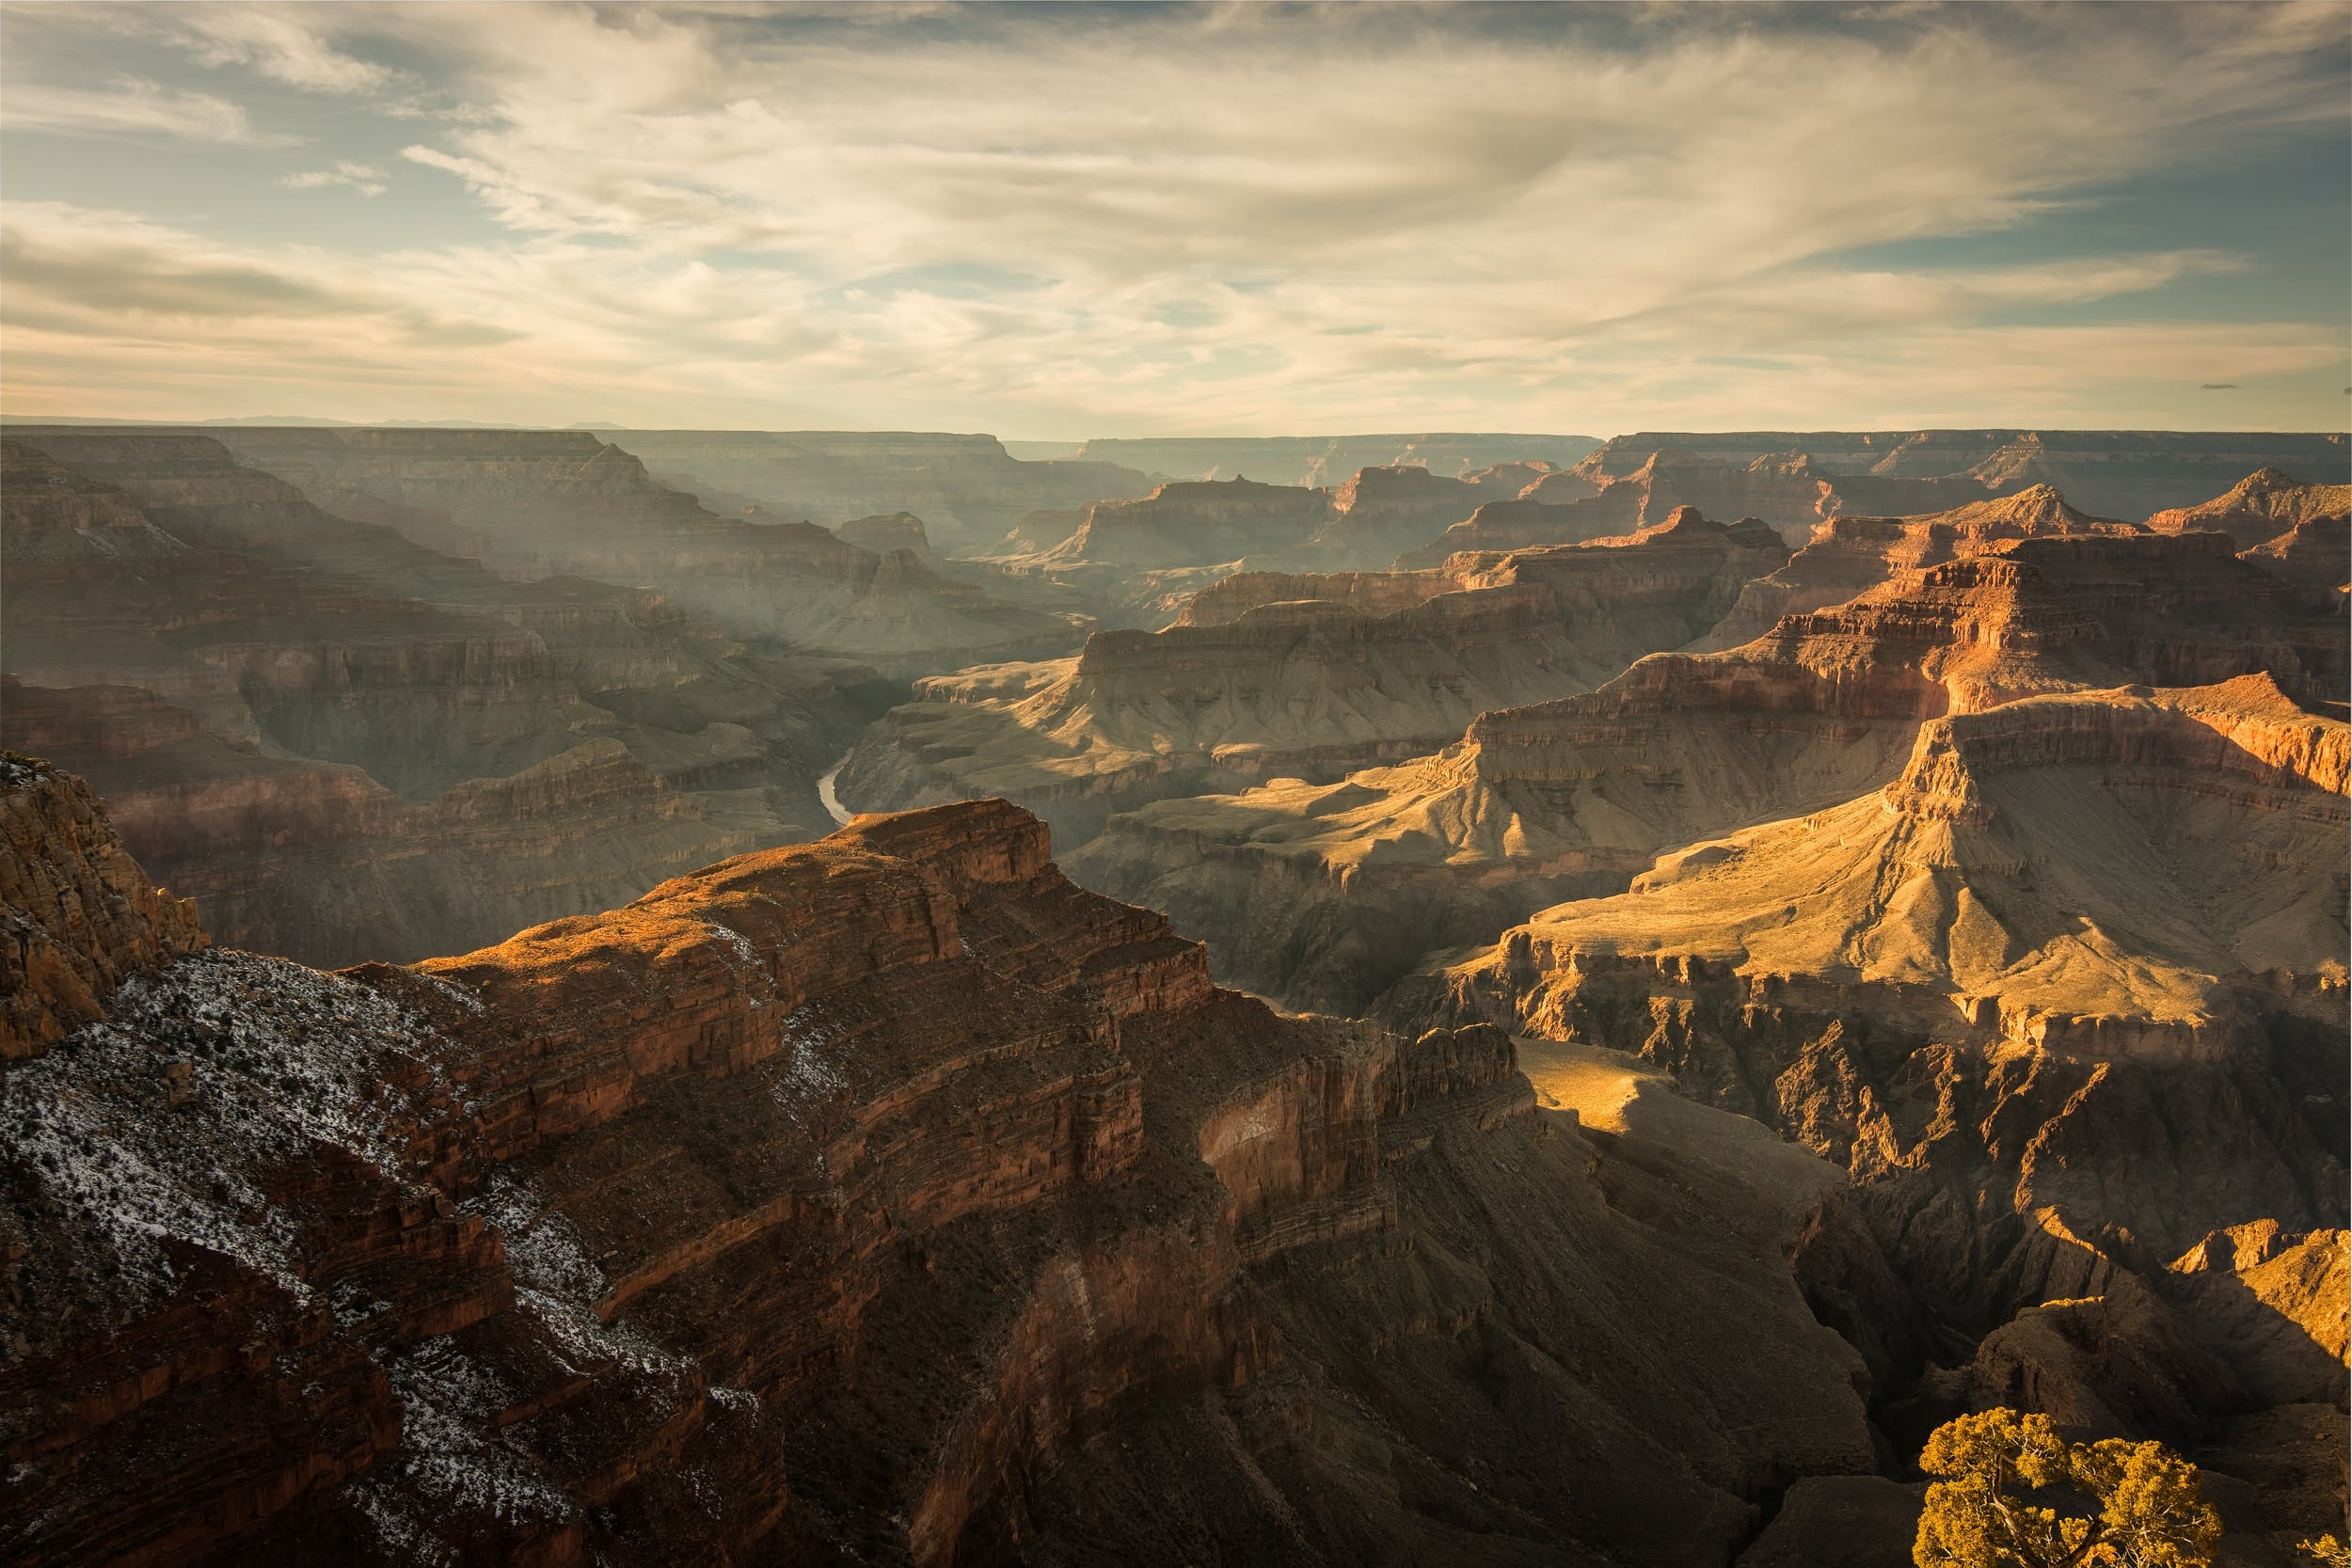 002 Las Vegas: Grand Canyon Helicopter Tours - las vegas